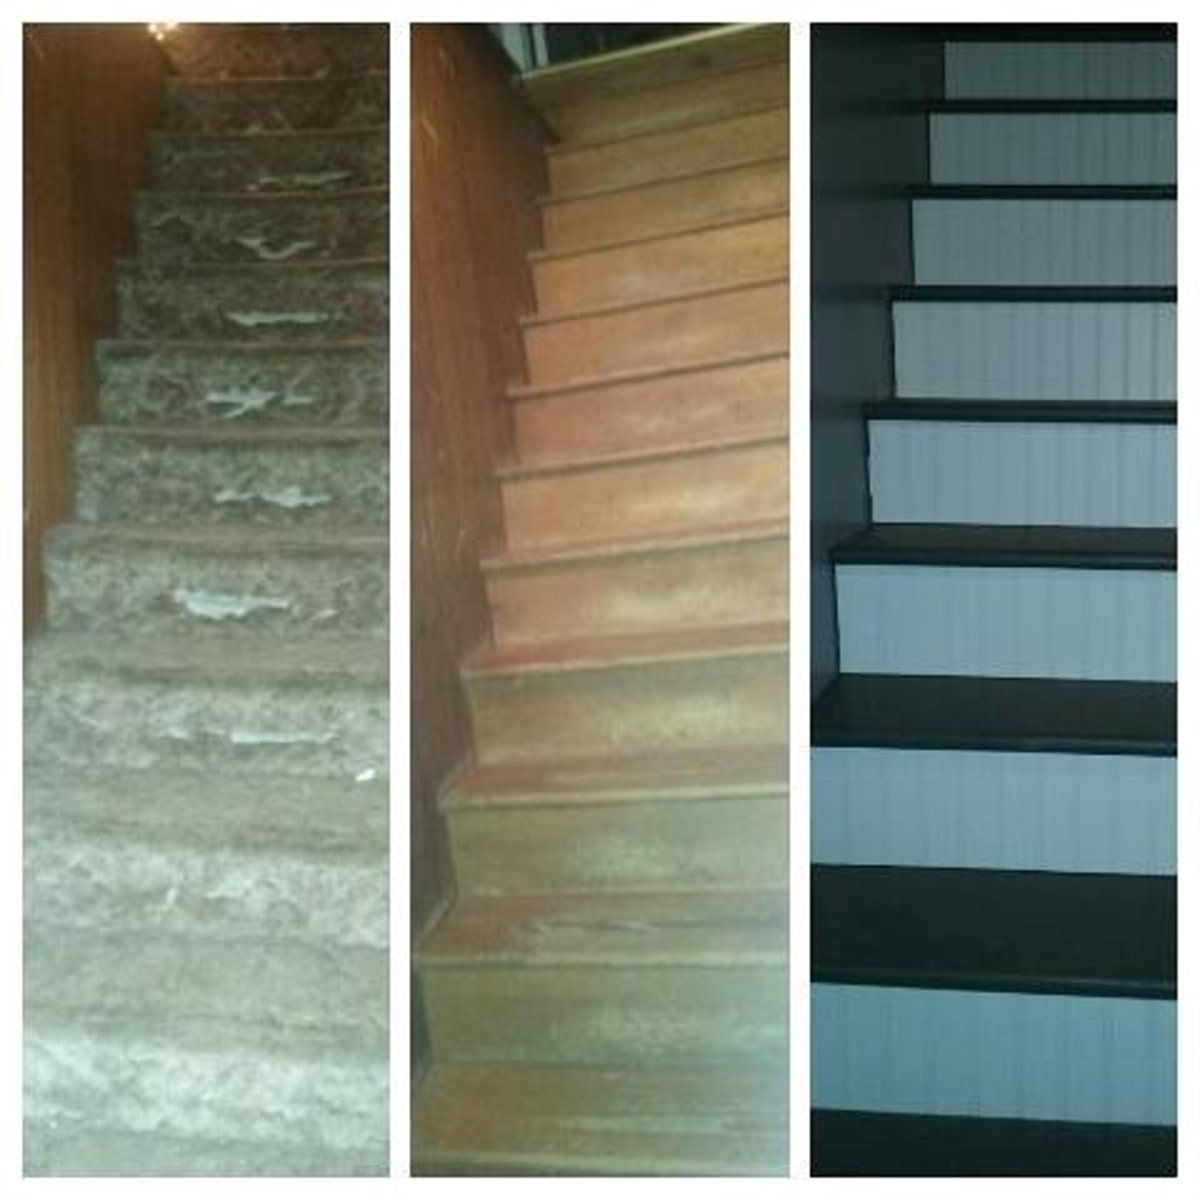 Redoing Carpeted Stairs:  From Worn-Out Carpet to Paint, One Couple's Journey!